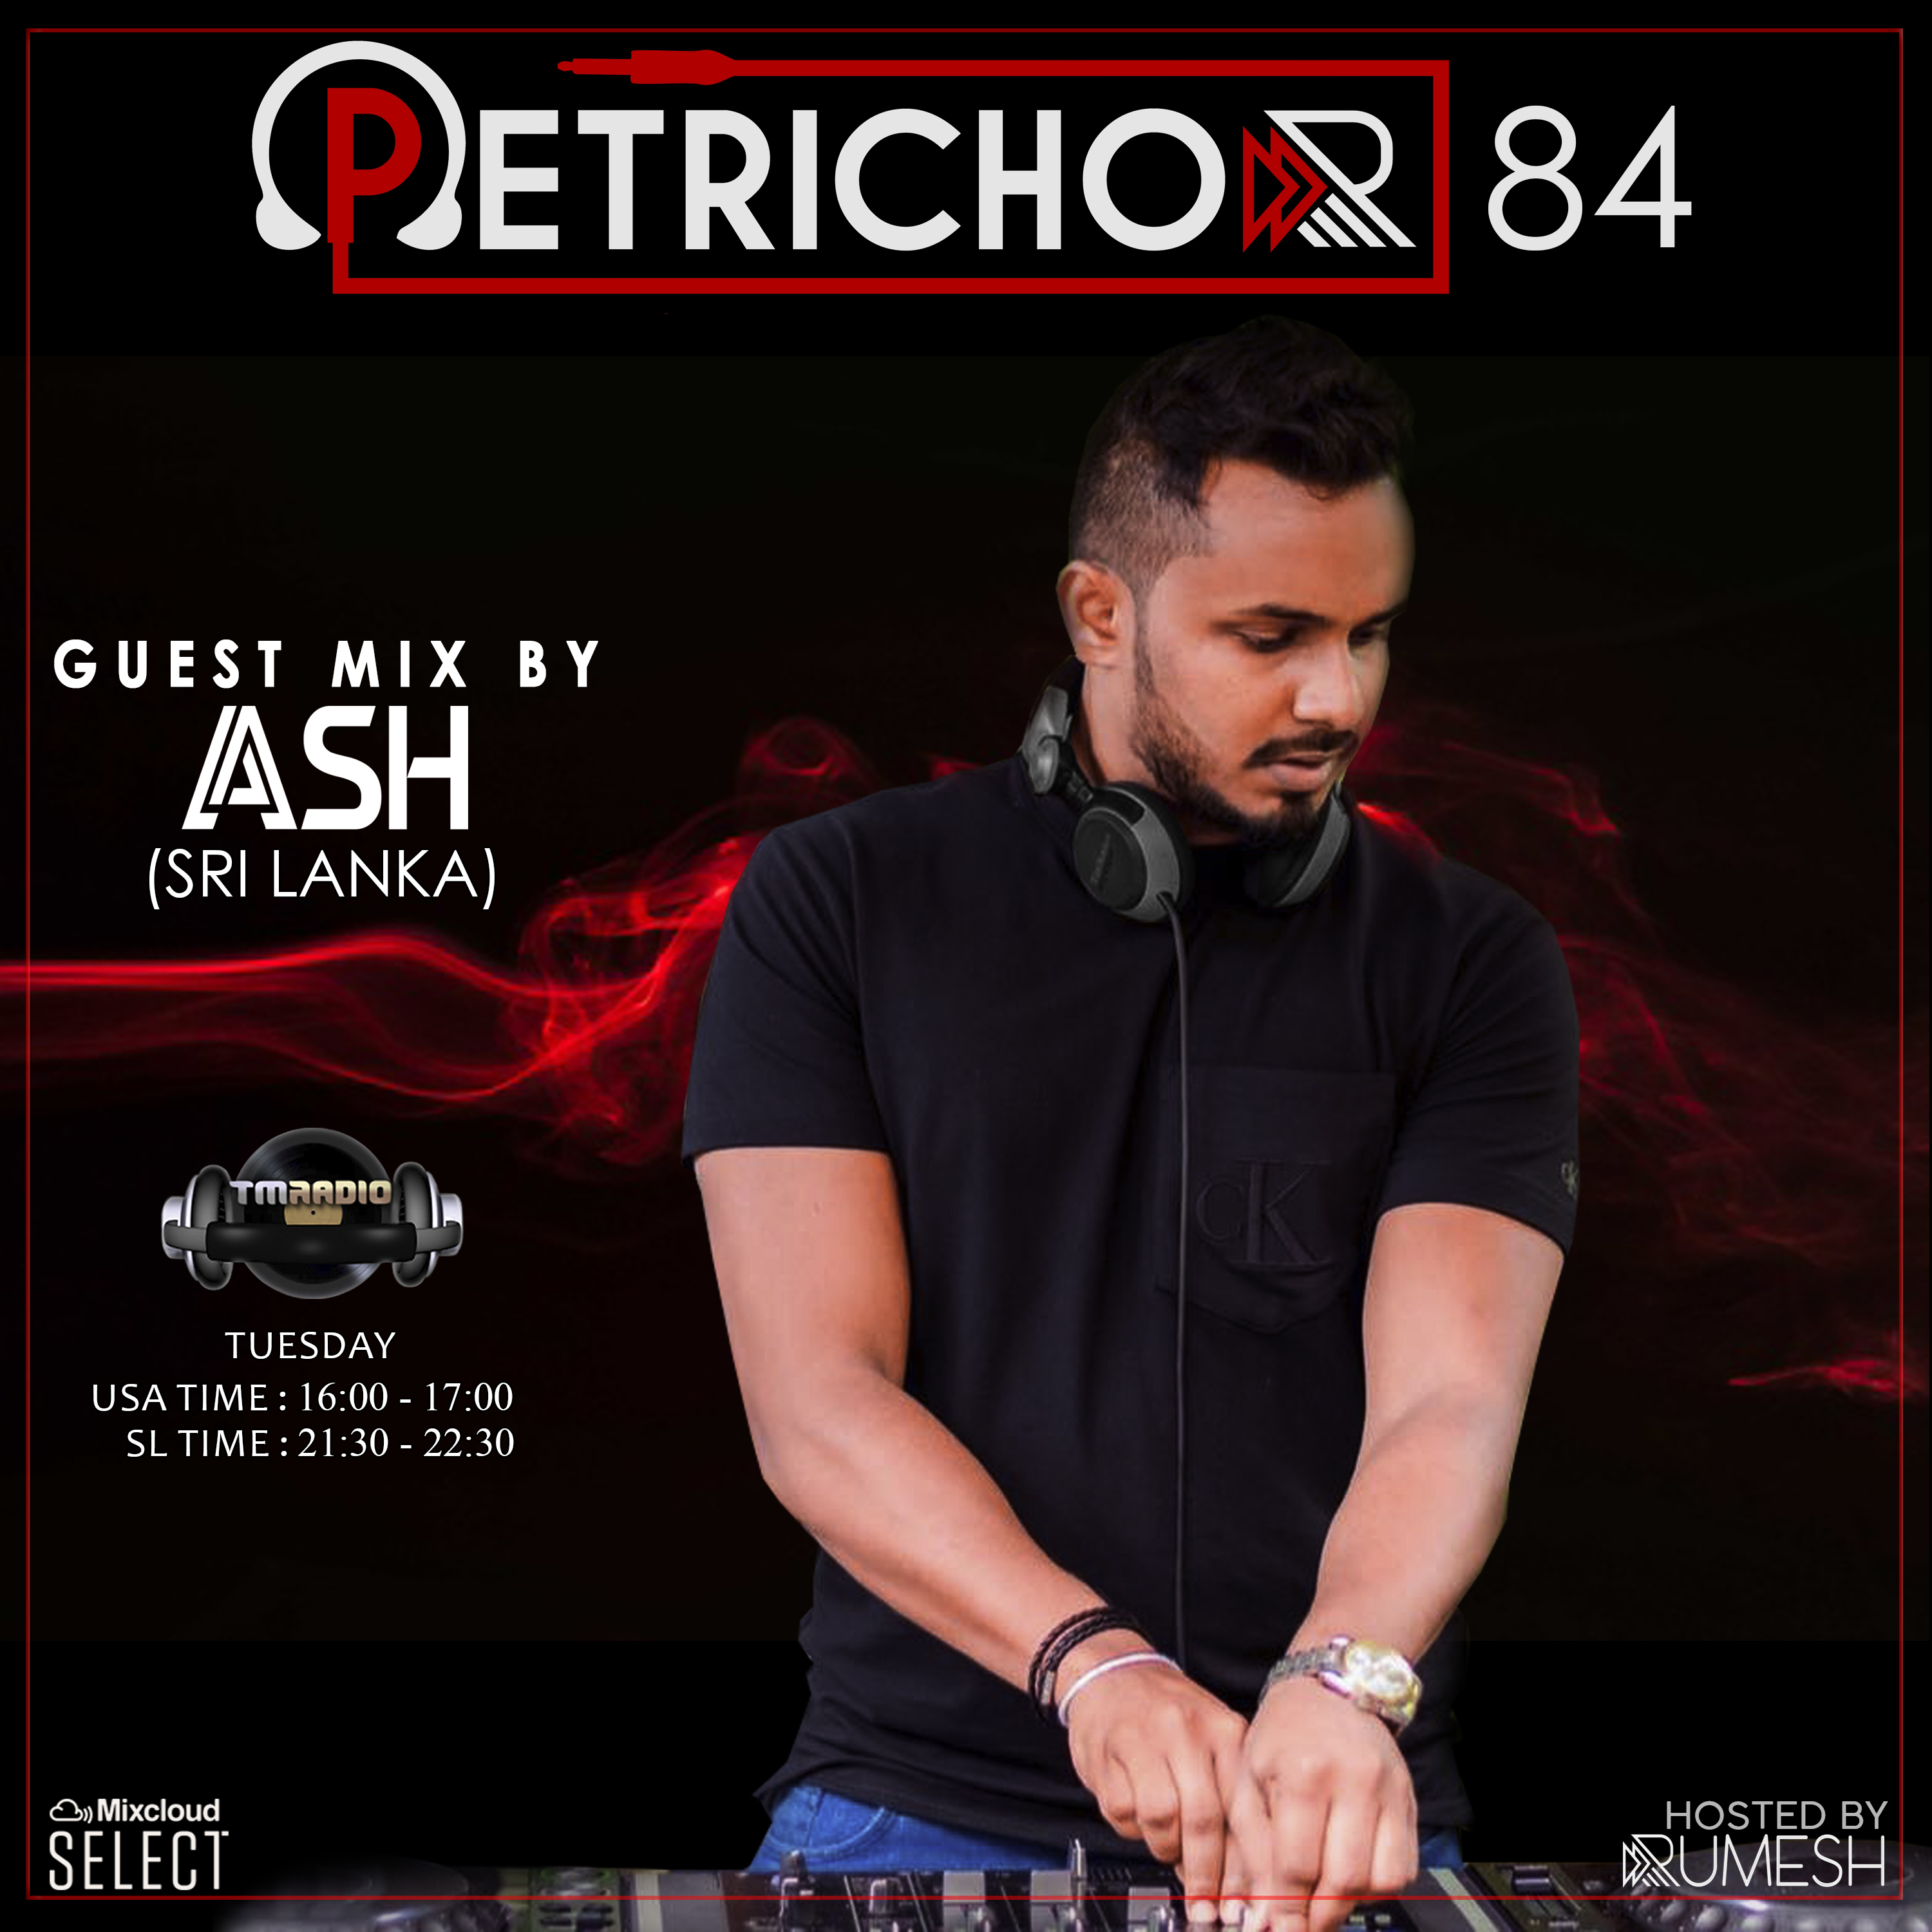 Petrichor :: Petrichor 84 guest mix by ASH - (Sri Lanka) (aired on June 16th) banner logo